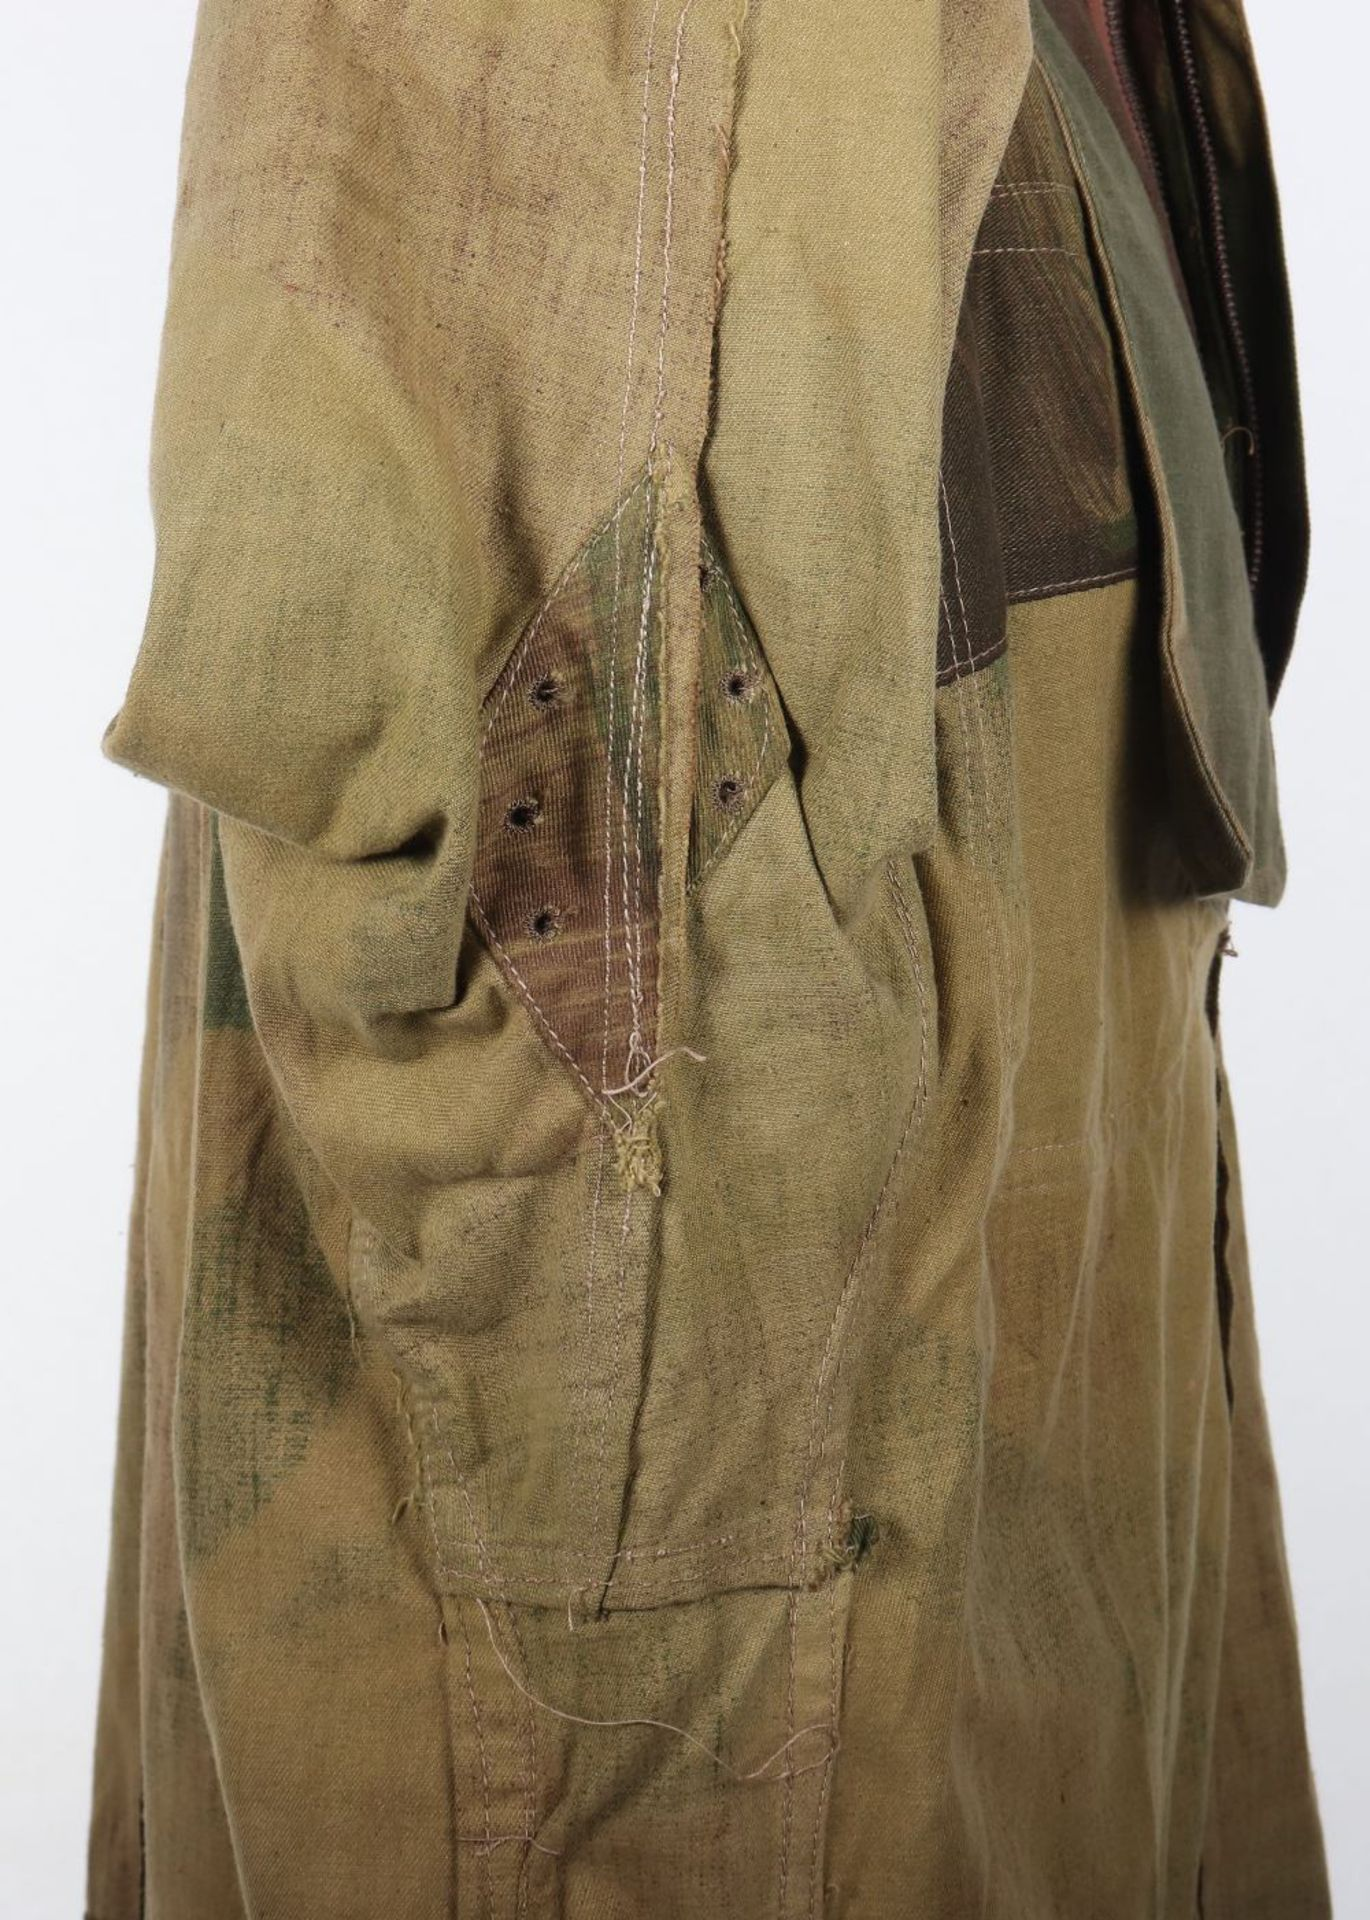 Mint Condition Large Size Airborne Forces Denison Smock - Image 15 of 17